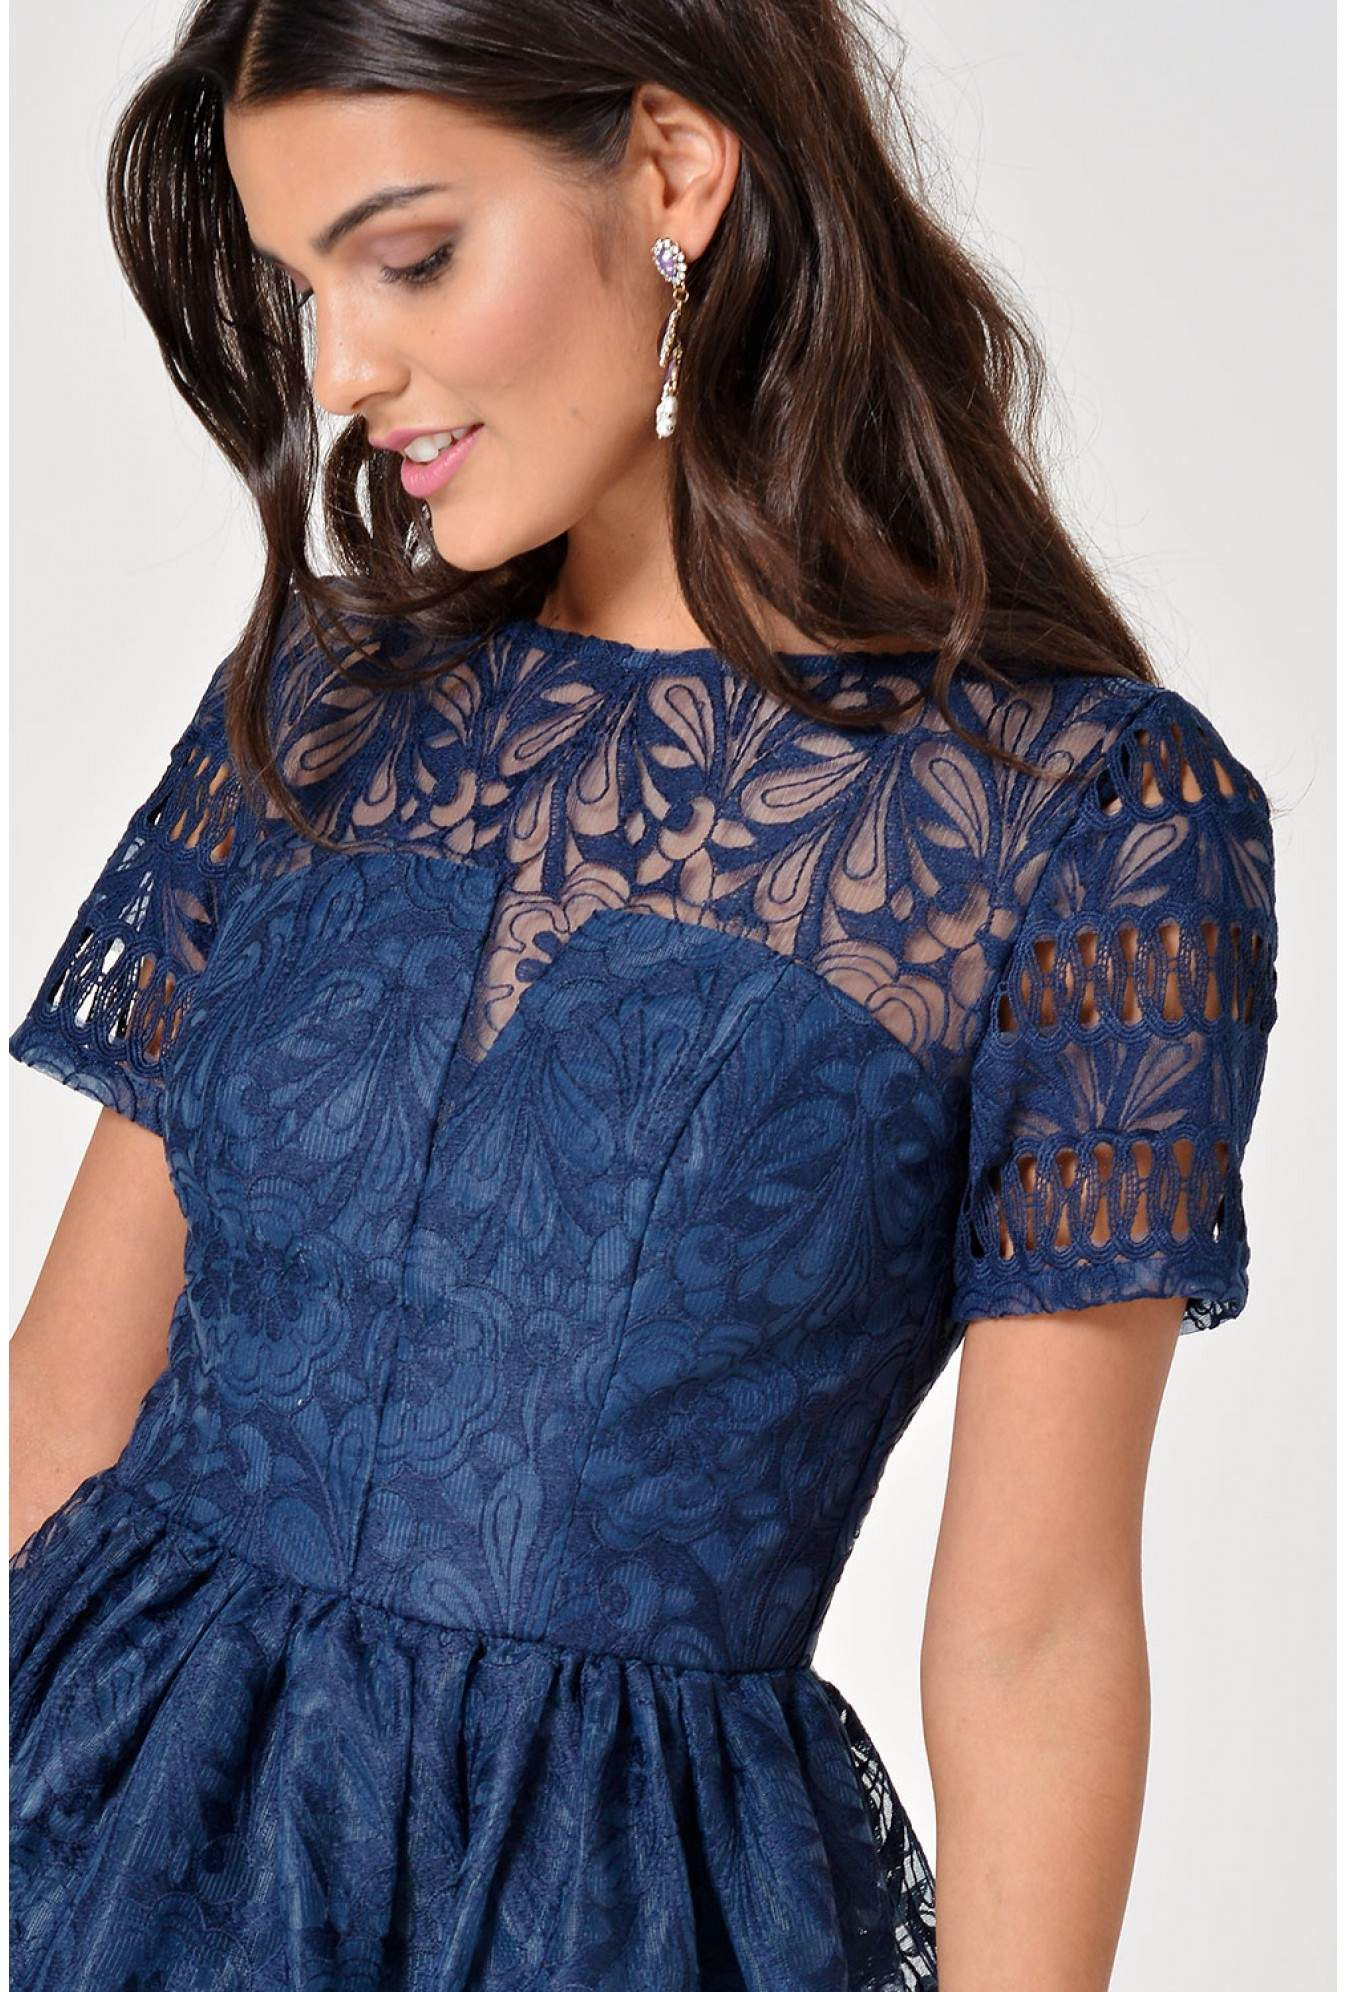 59862320325 More Views. Sheridan Lace Dress in Navy